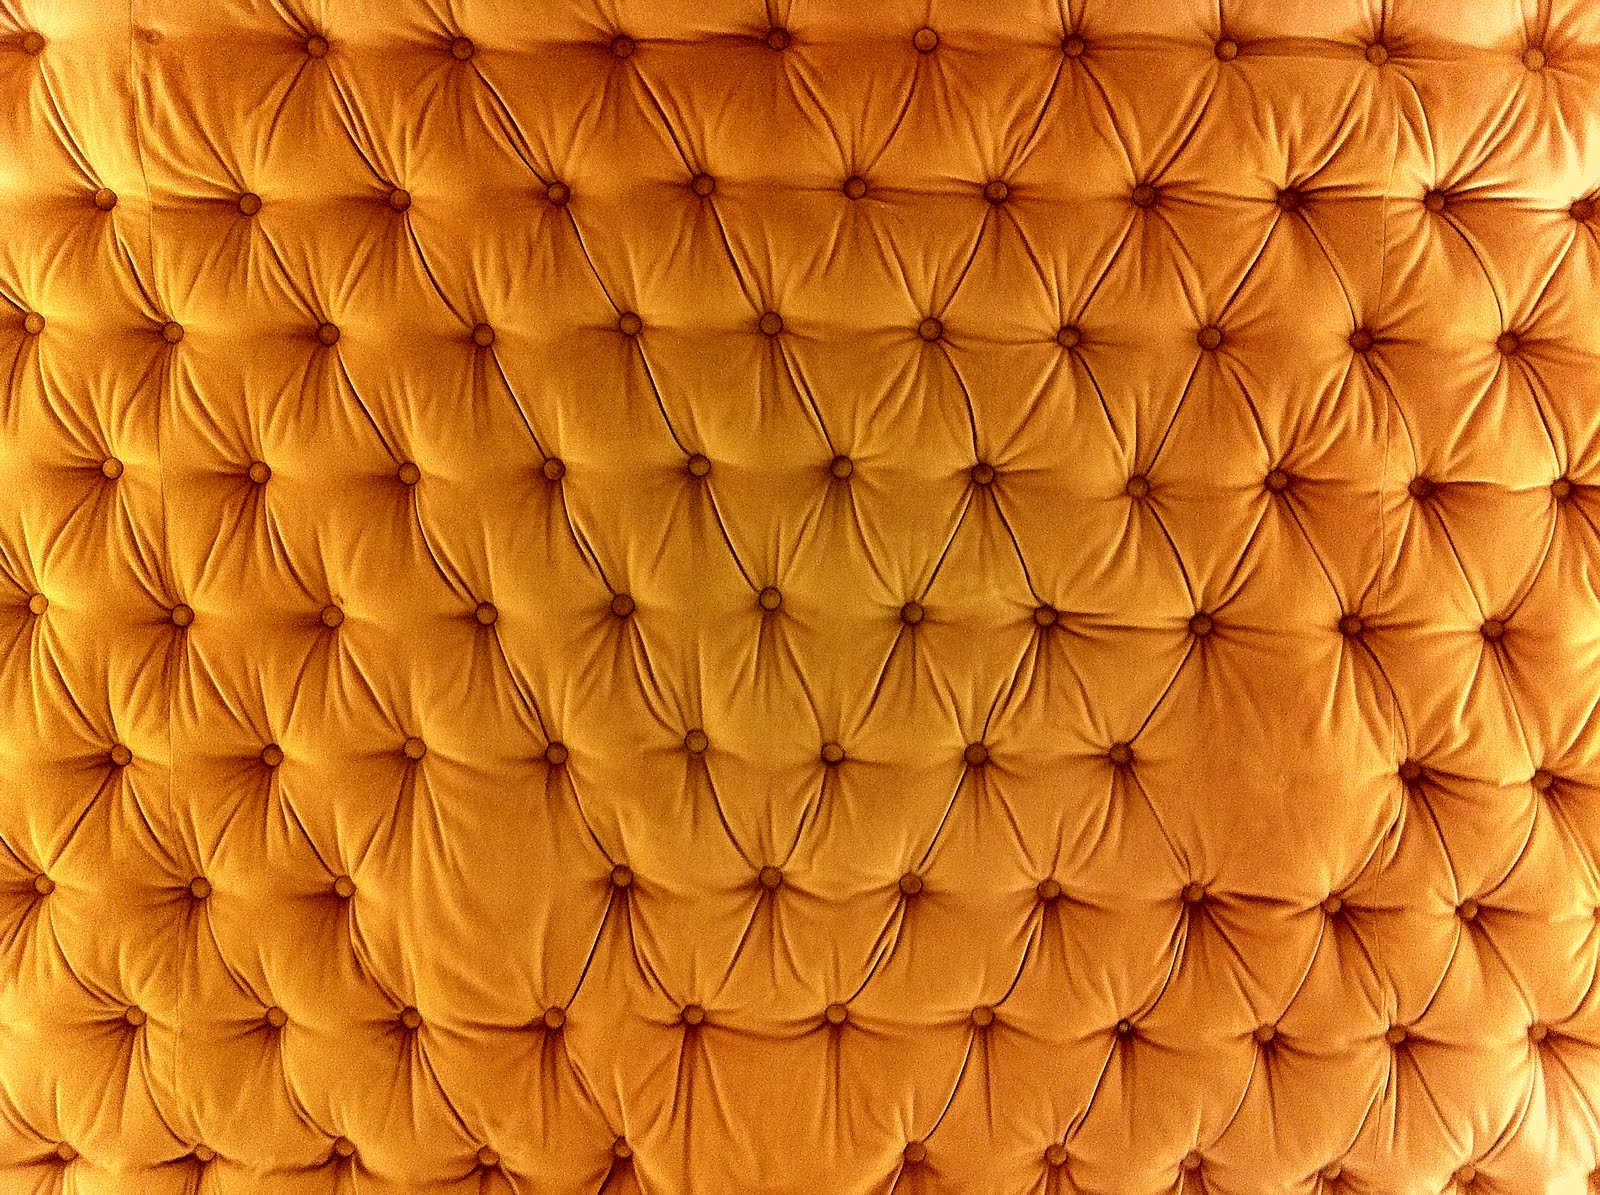 Padded Room With Walls